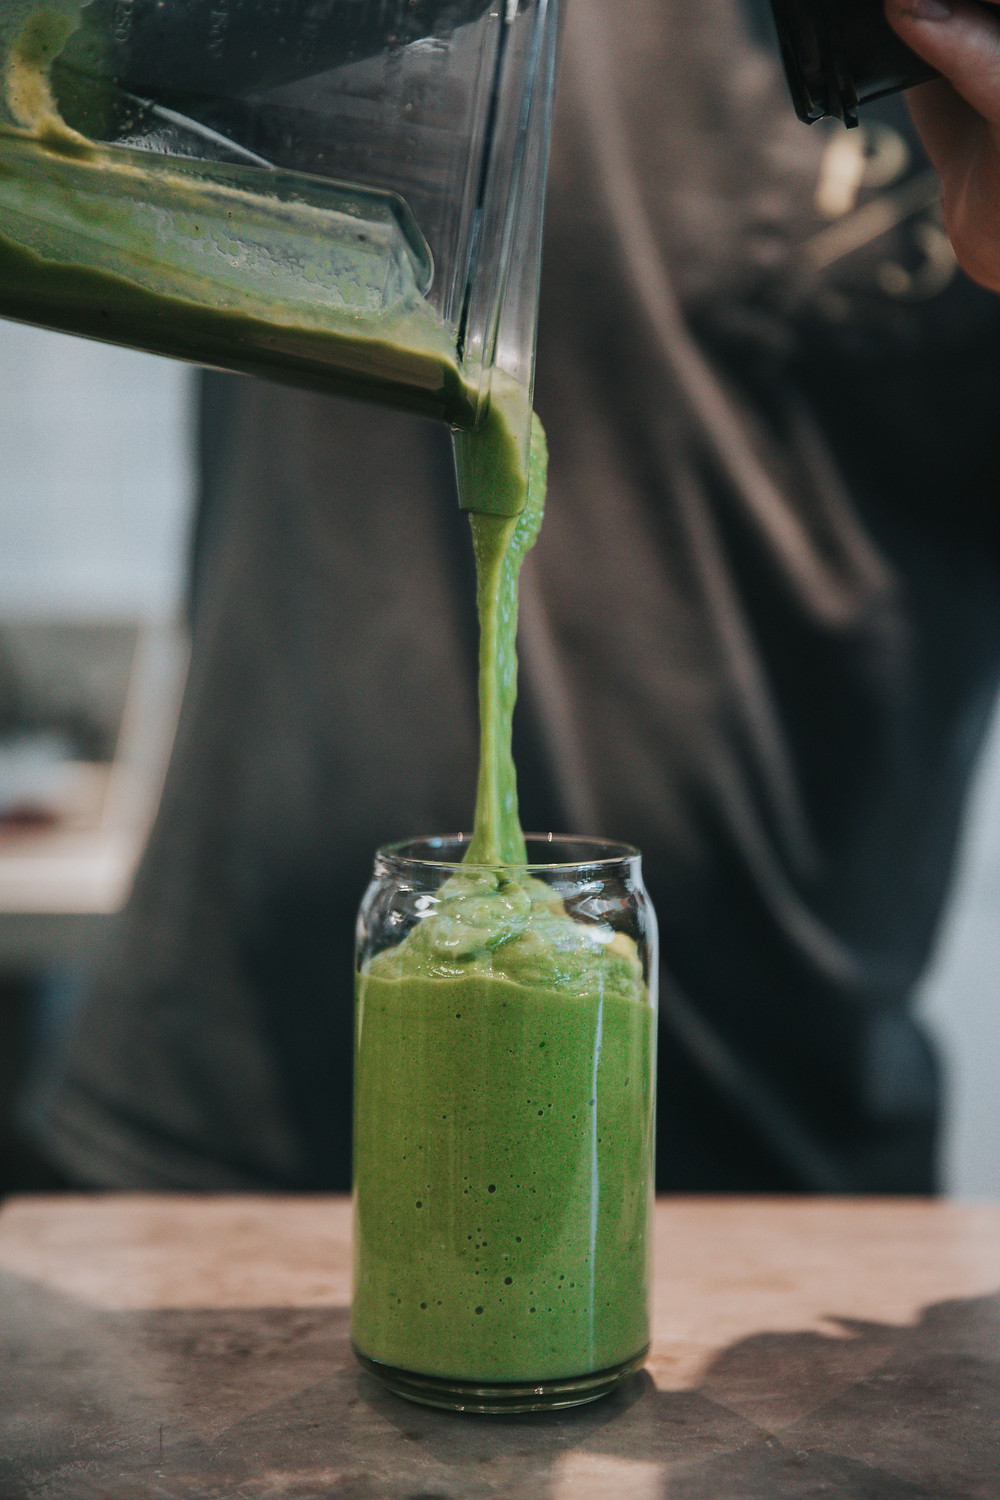 Wheatgrass in your green smoothie